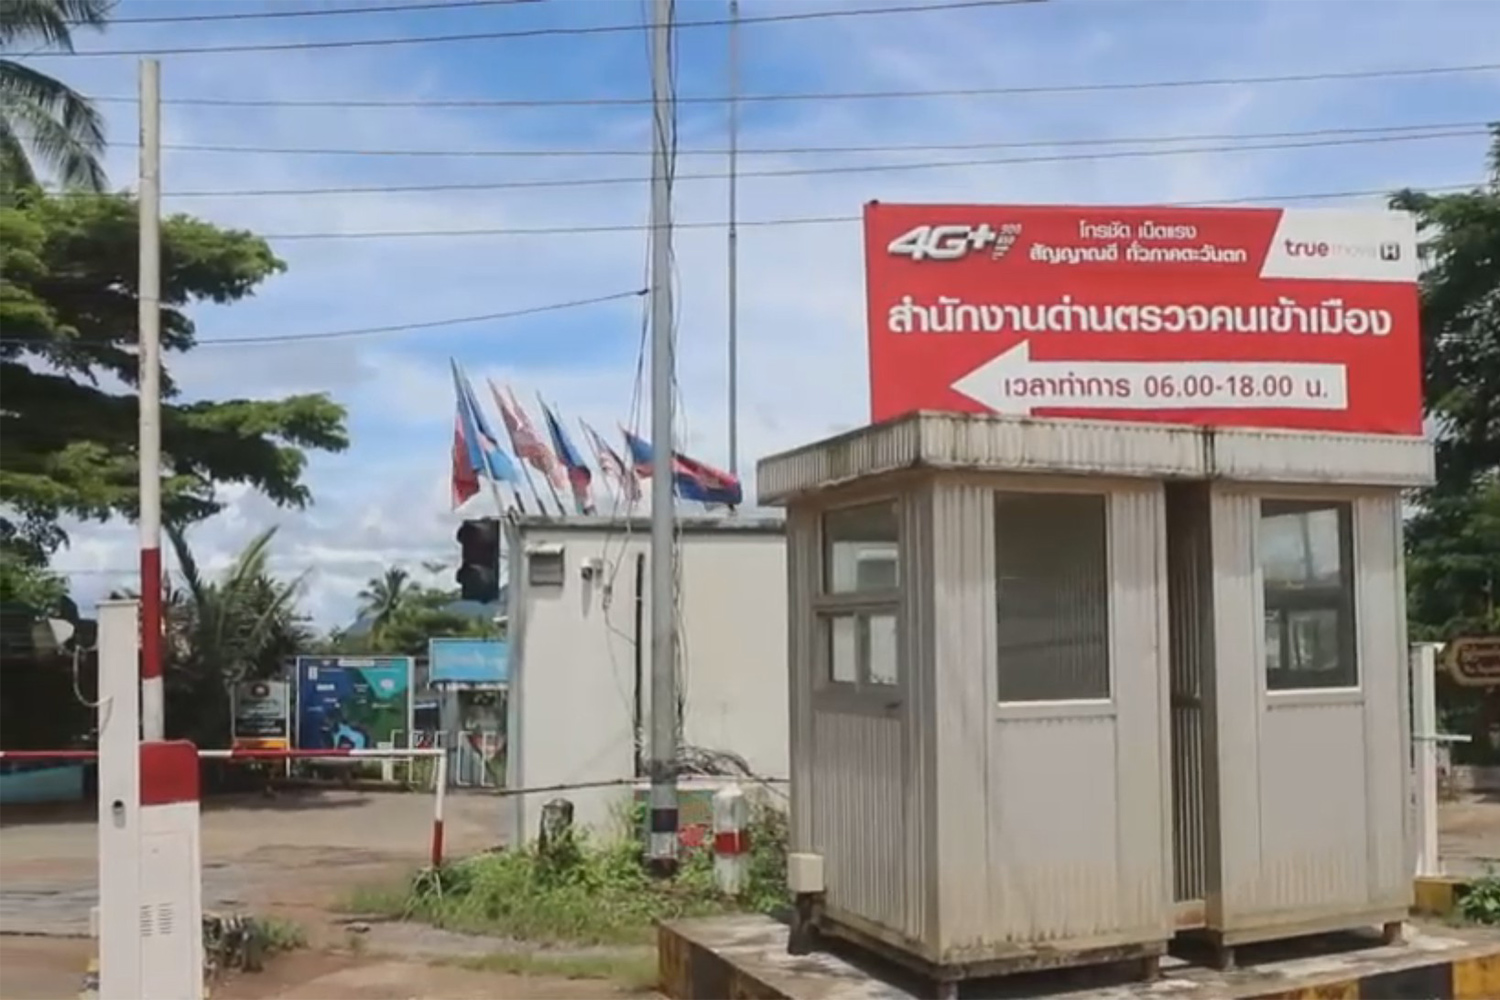 The Three Pagodas checkpoint in Sangkhla Buri district of Kanchanaburi province has been closed until Oct 5 to prevent a coronavirus spread from Myanmar. (Photo by Piyarat Chongcharoen)